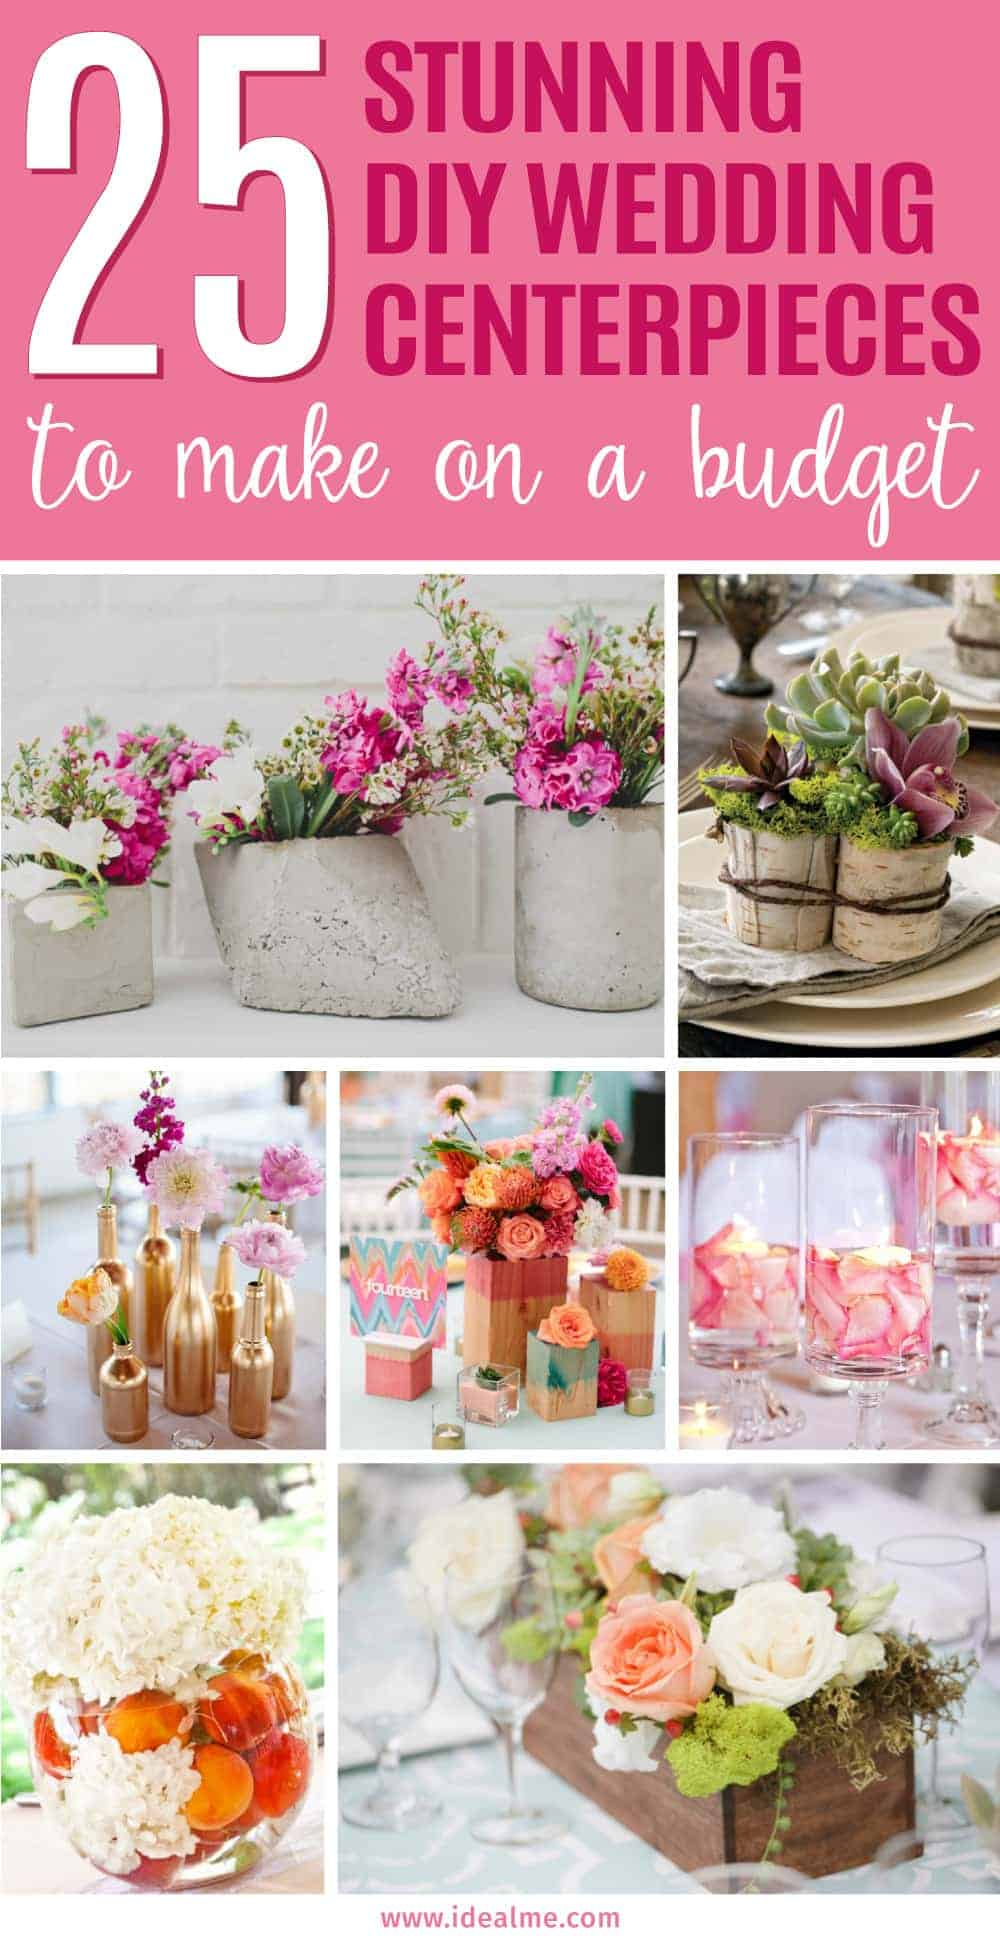 wedding decoration ideas budget 25 stunning diy wedding centerpieces to make on a budget 9045